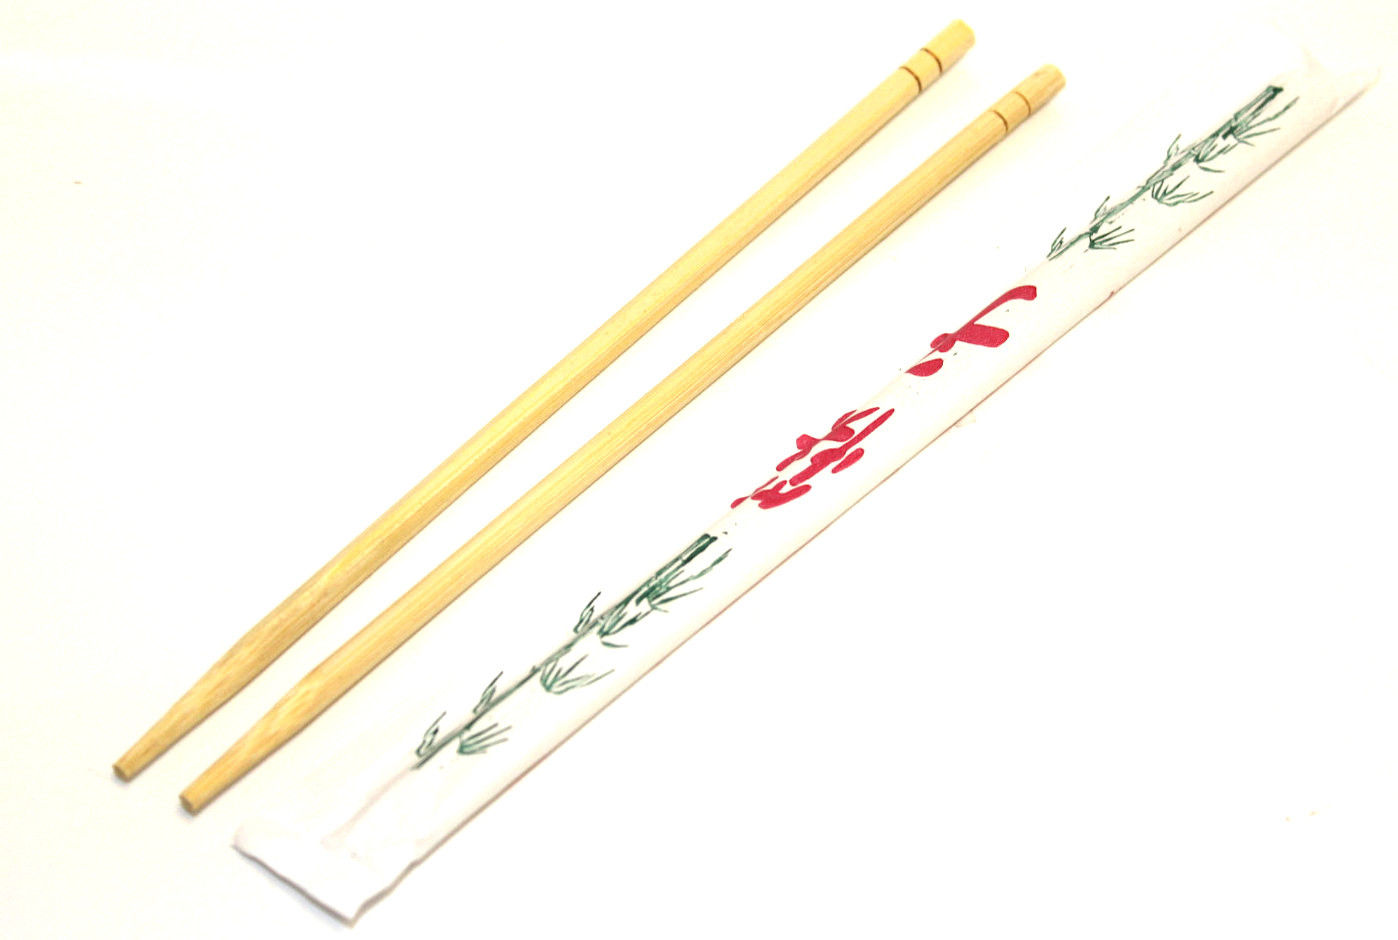 Disposable Bamboo Chopsticks - Commonly used in China